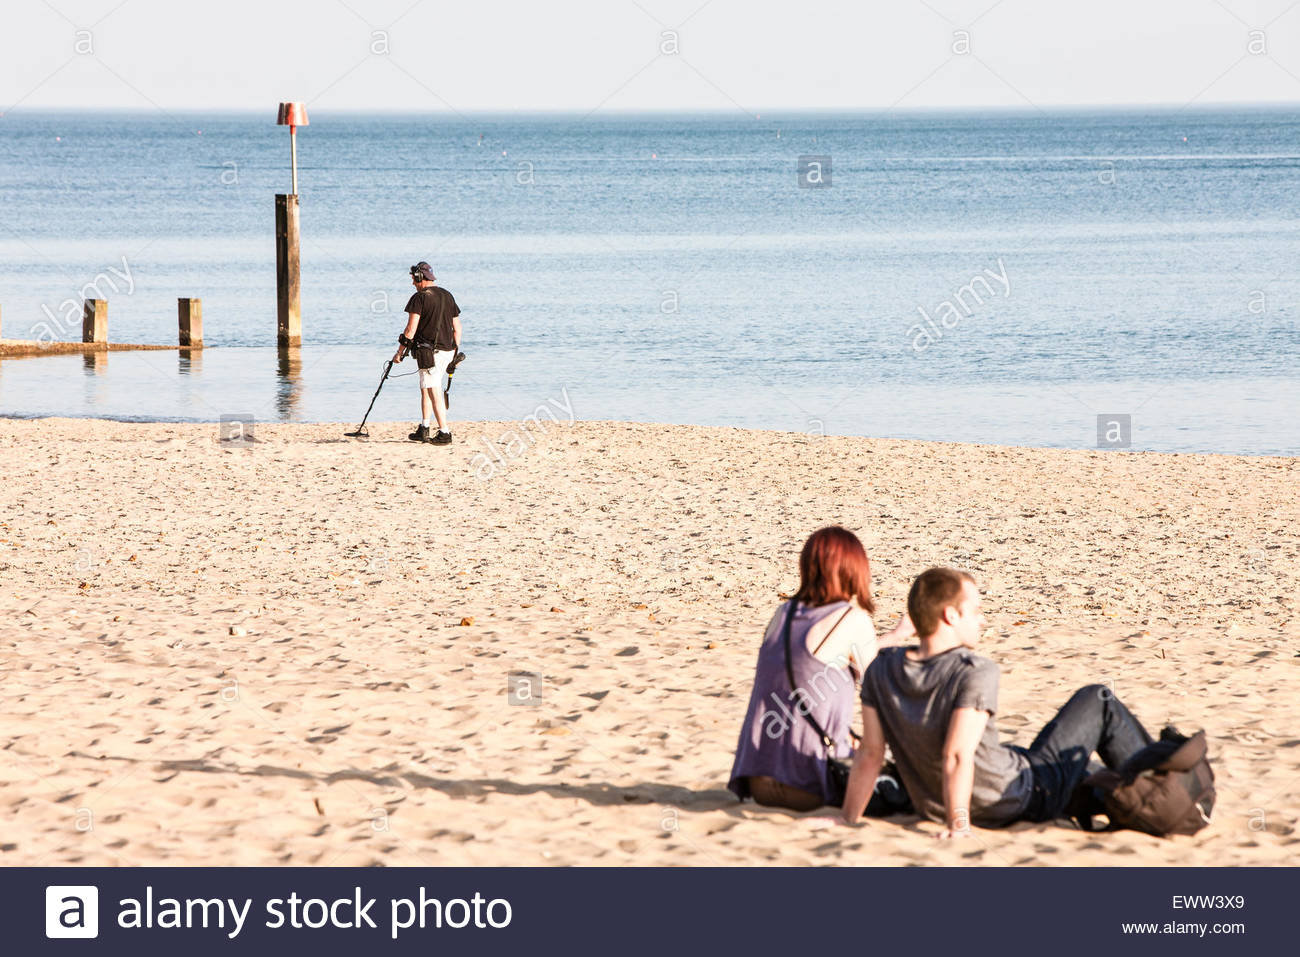 On a sunny Spring day using metal detector after most tourists/holiday  makers have left beach looking for lost items/treasure